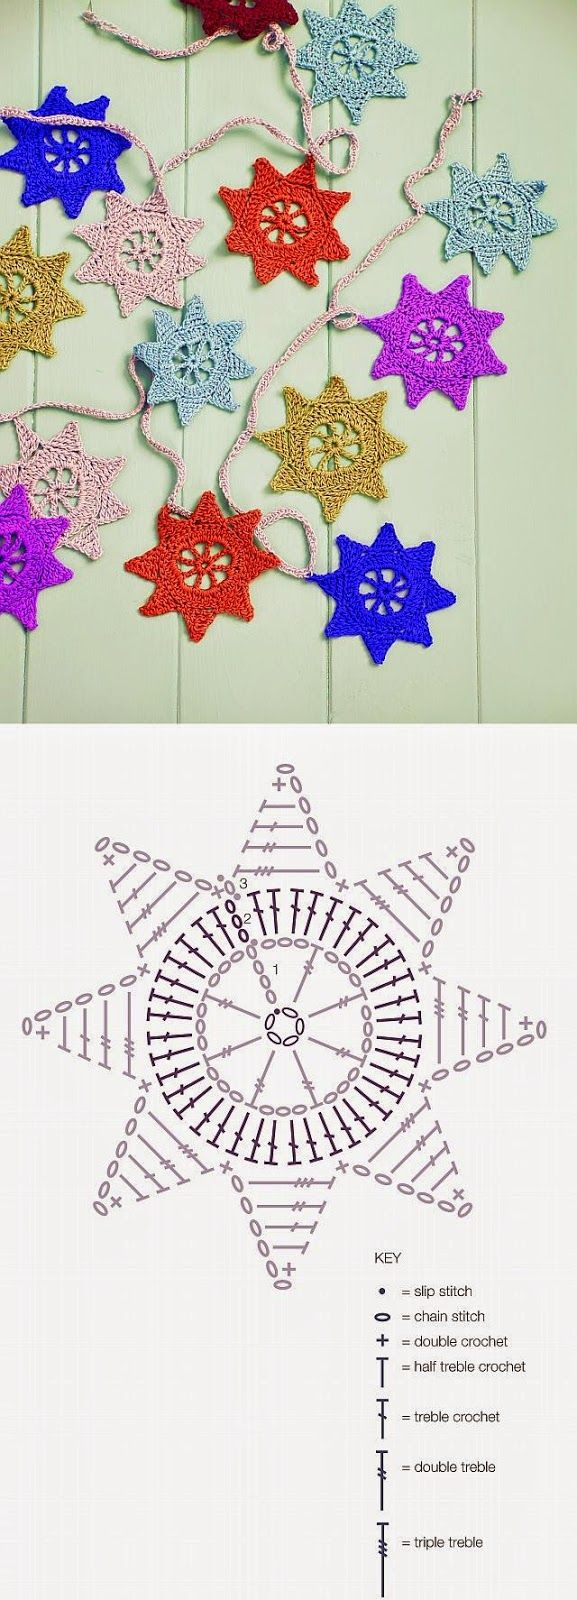 Tutoriales y DIYs: Ganchillo: estrella | Crochet Patterns ...